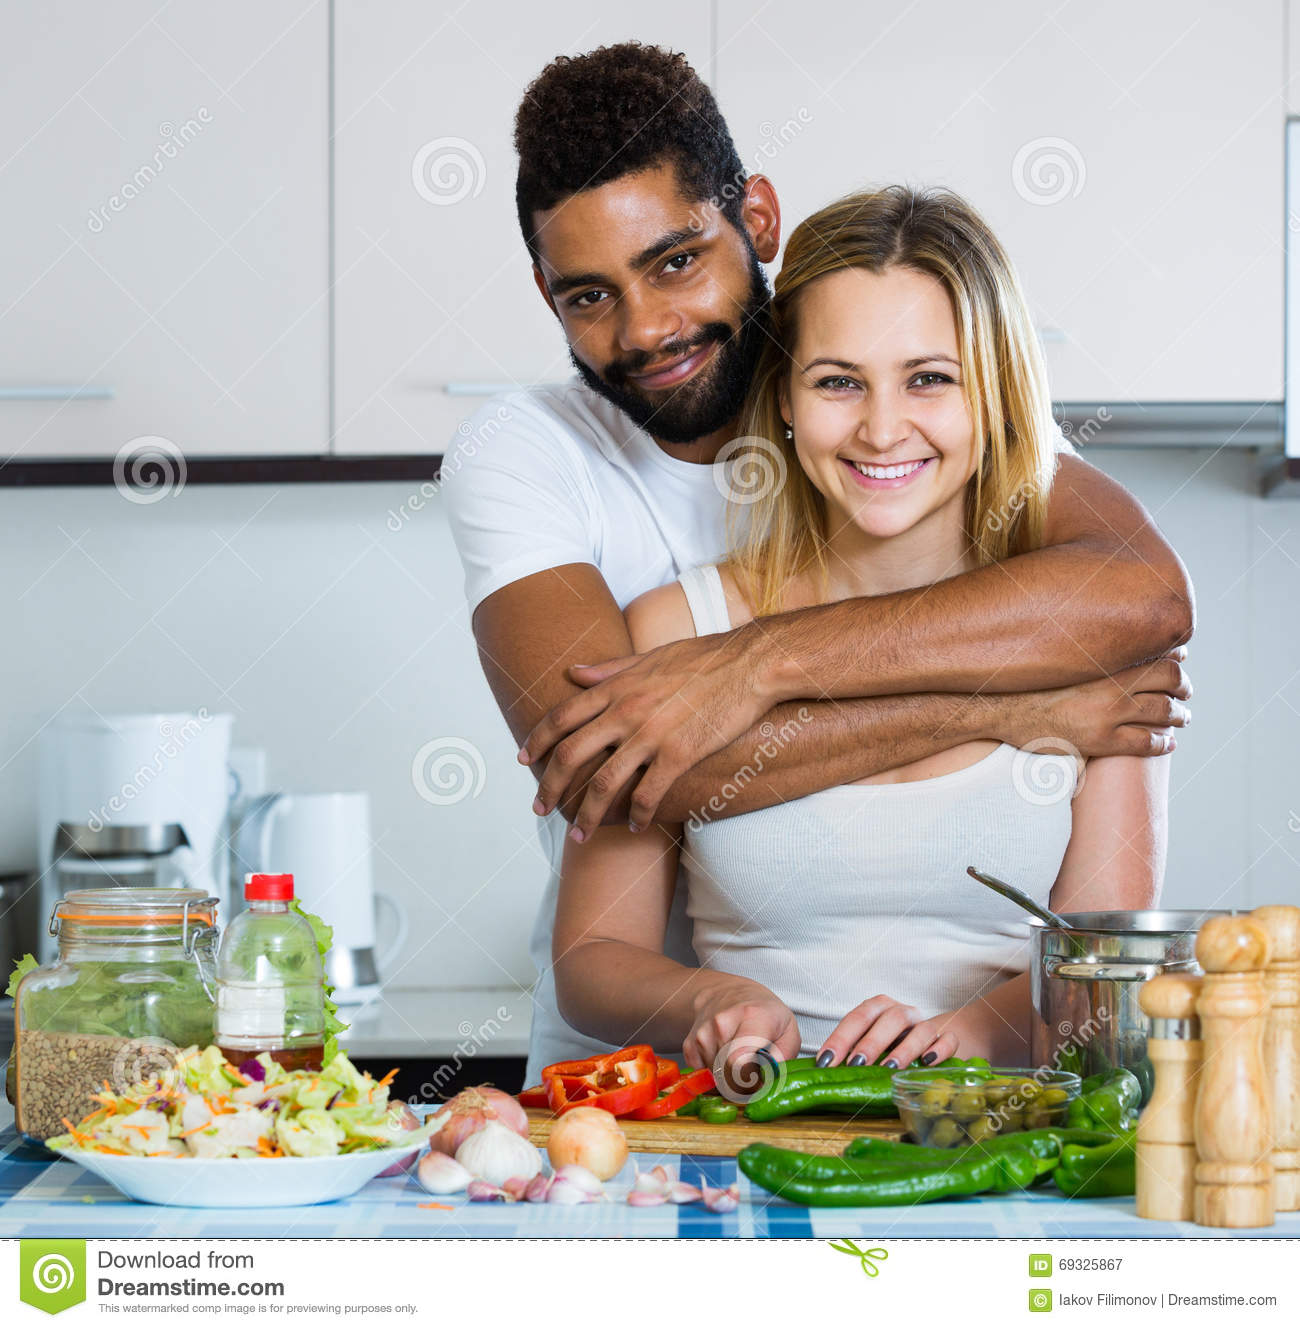 Afro Man And White Woman Cooking At Kitchen Table Stock Image - Image of  person, happy: 69325867